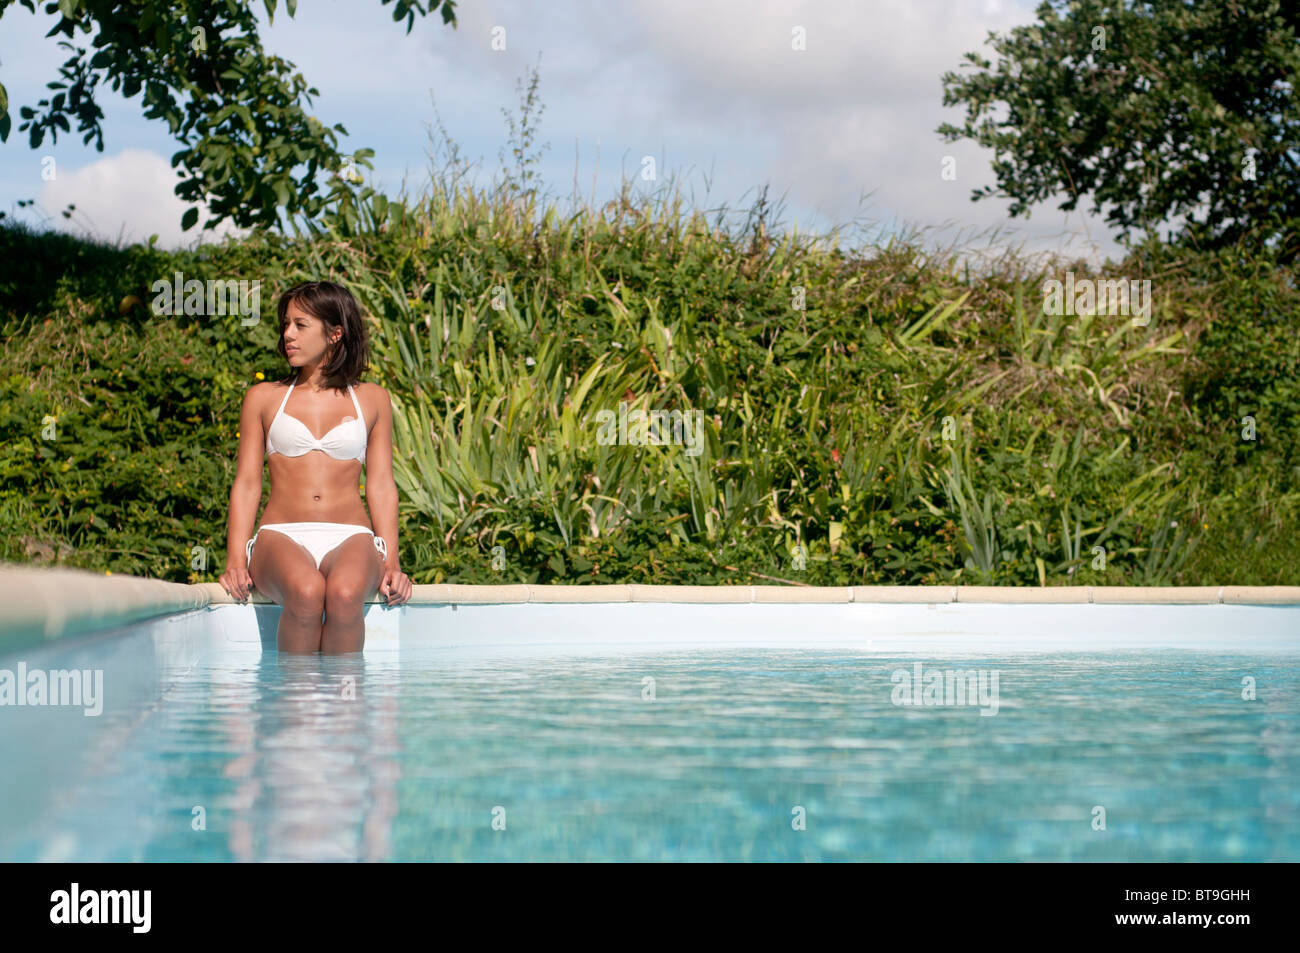 A woman sitting by an outdoor swimming pool, legs in the water - Stock Image